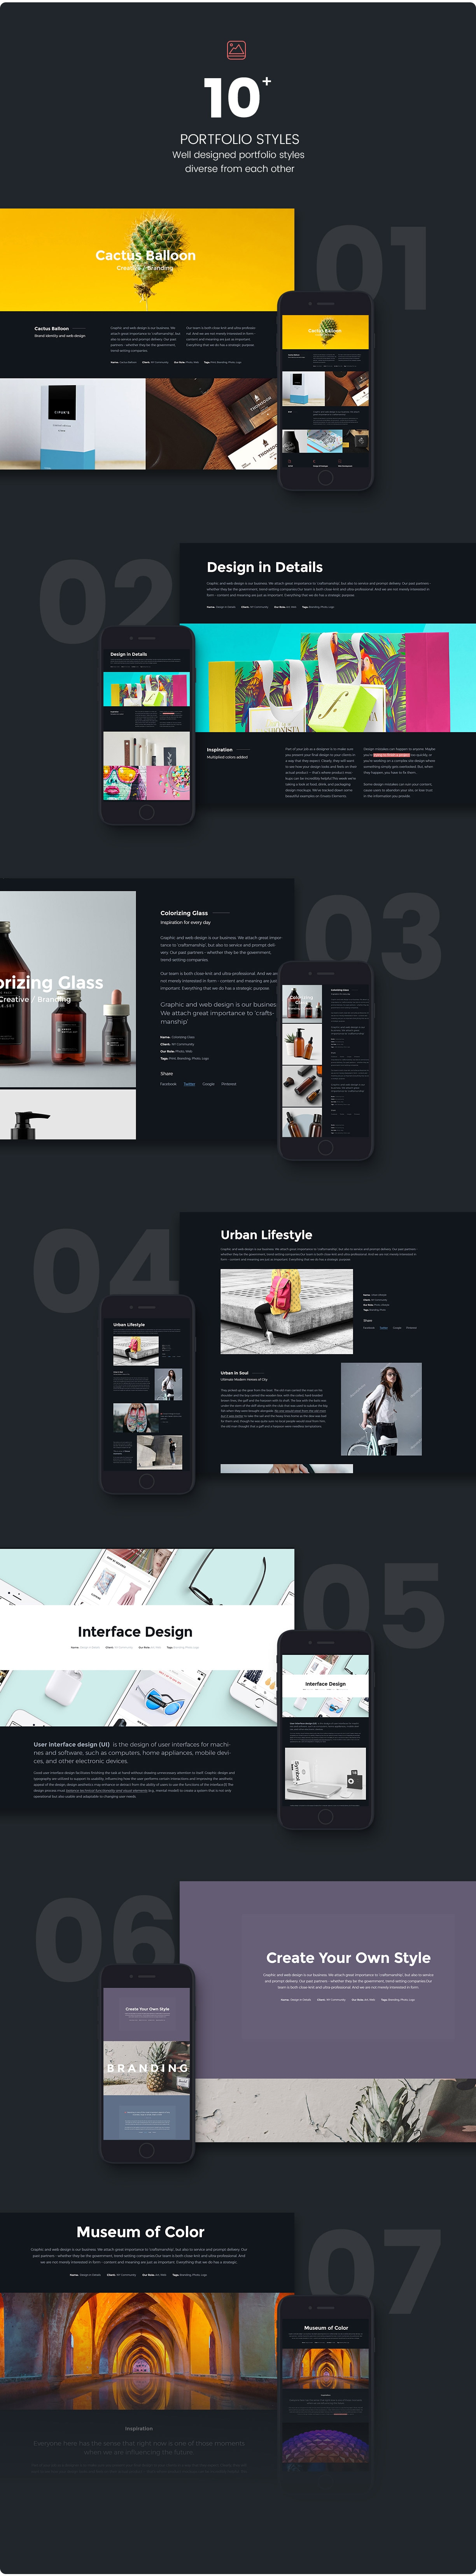 Photography Creative Portfolio WordPress Theme - Soho Pro - 2